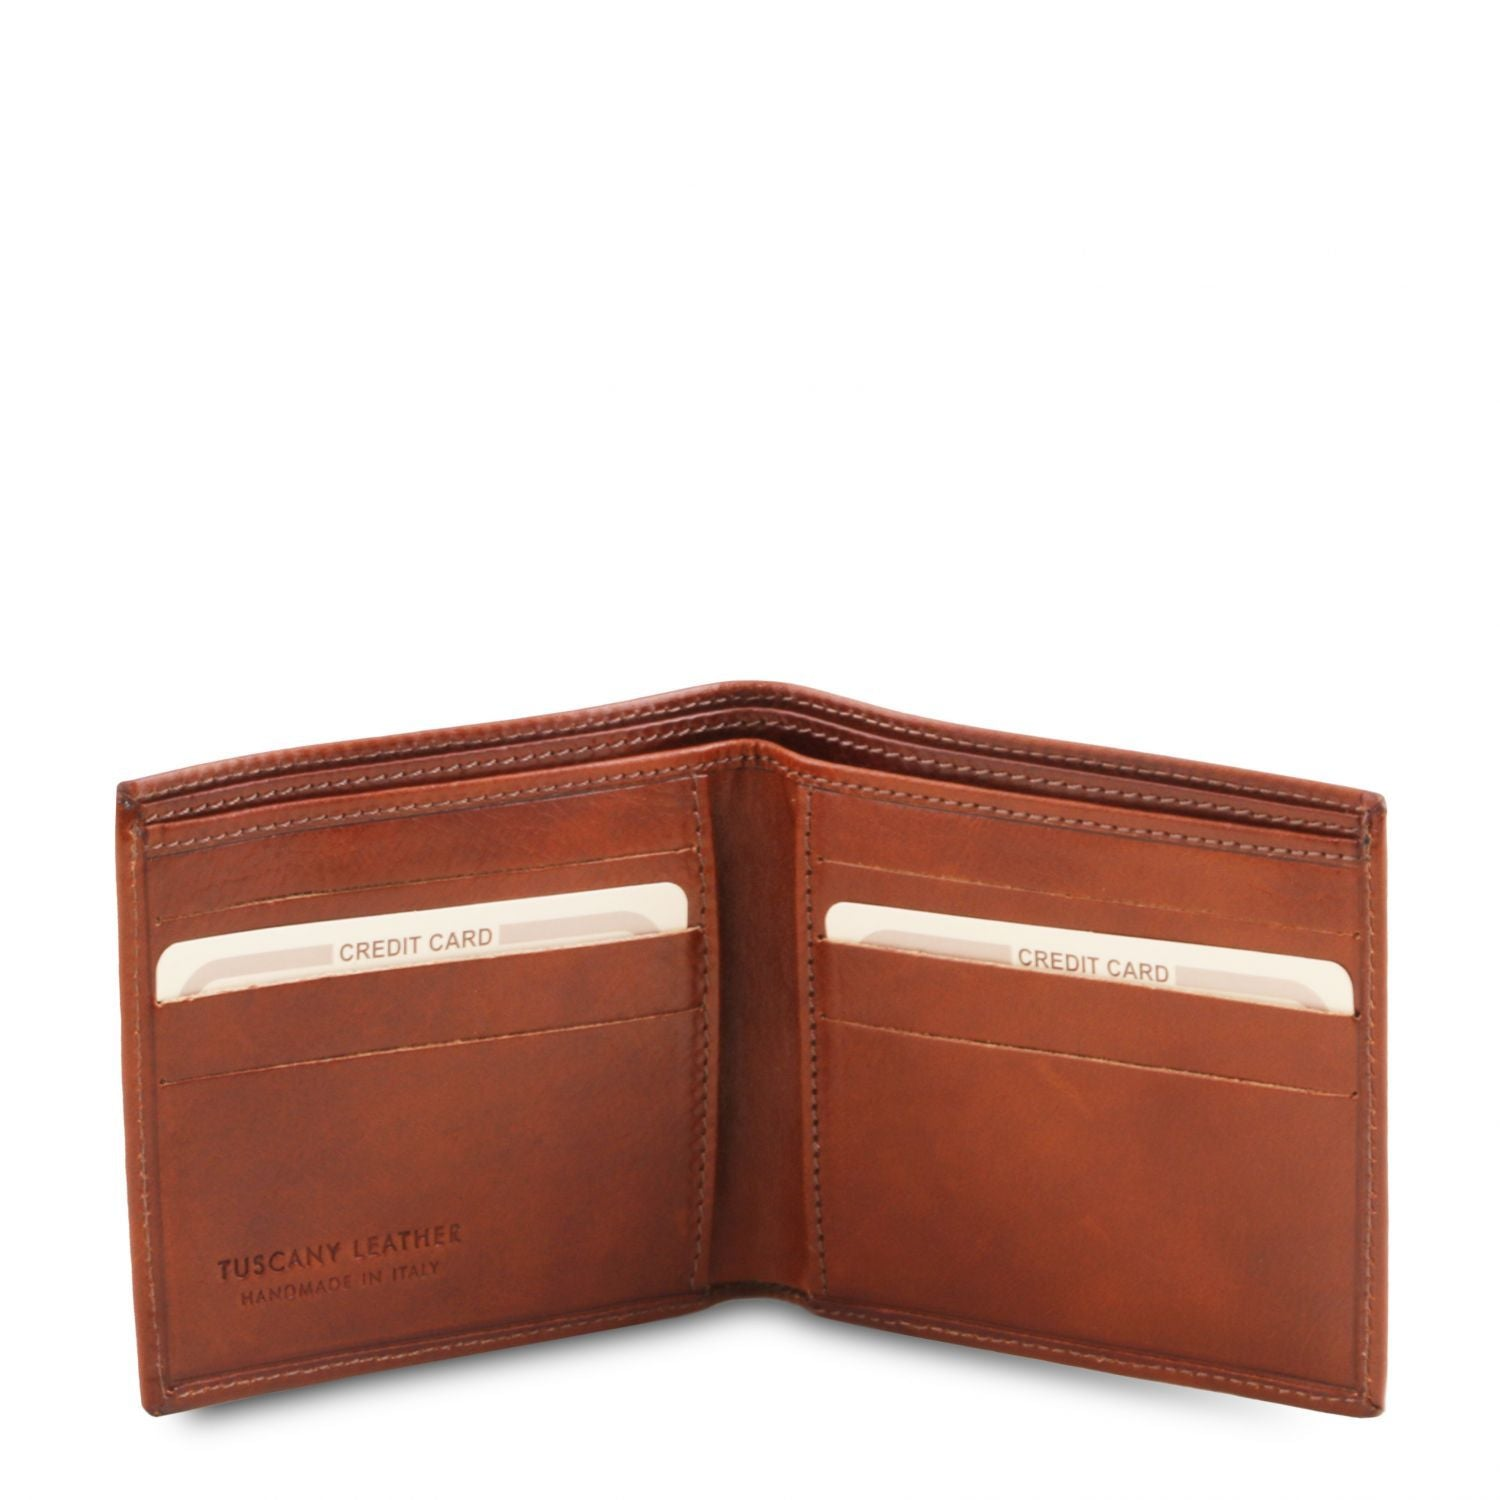 Exclusive 2 fold leather wallet for men (TL140797) - Leather wallets for men | DILUSSOBAGS